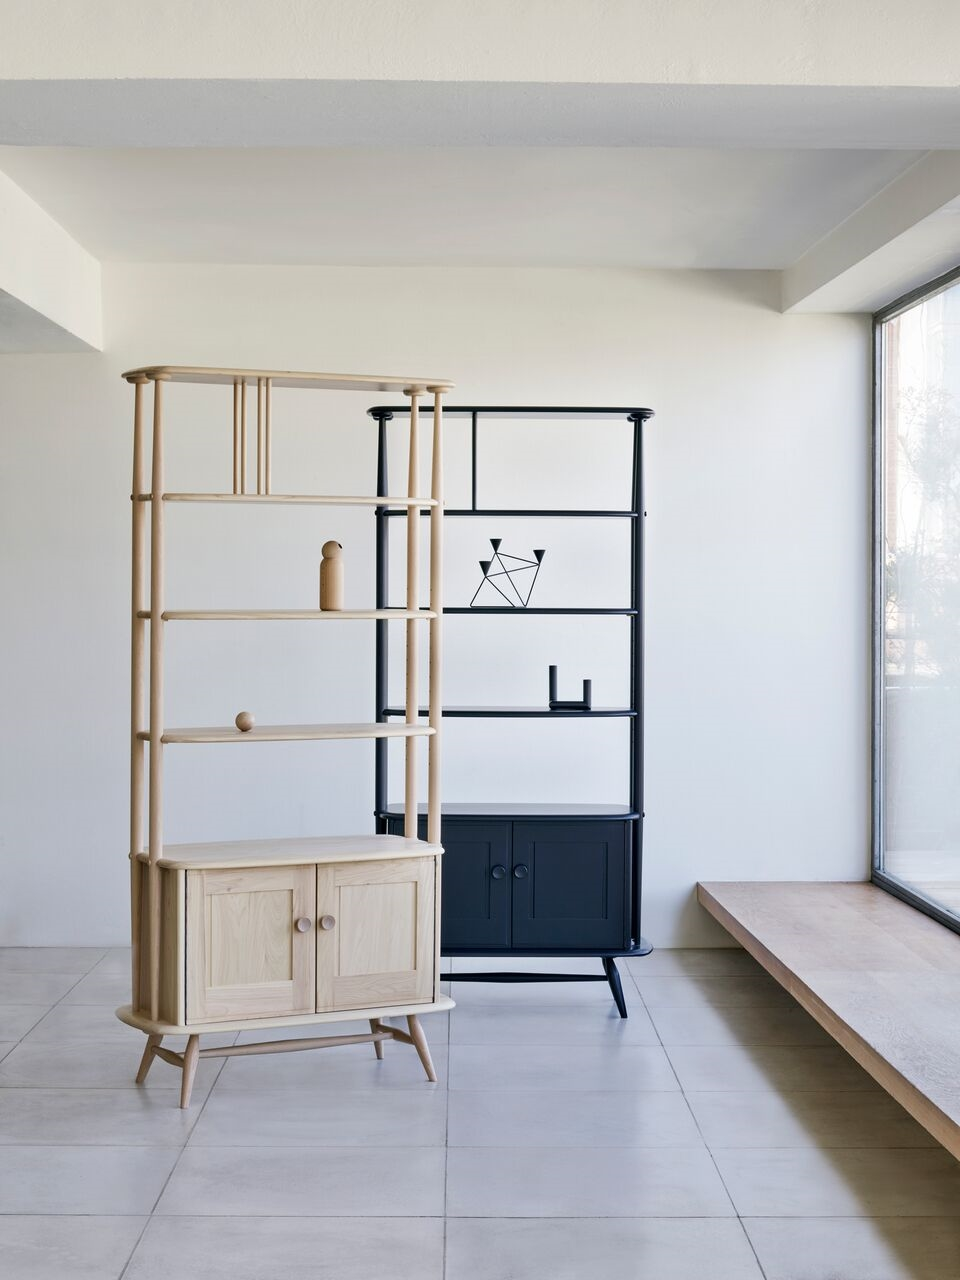 Ercol 363 Room Dividers start from $4020 for the natural version and $4120 for the colored finish, available through any of Ercol's North American stockists, www.ercol.com/international/find-a-stockist